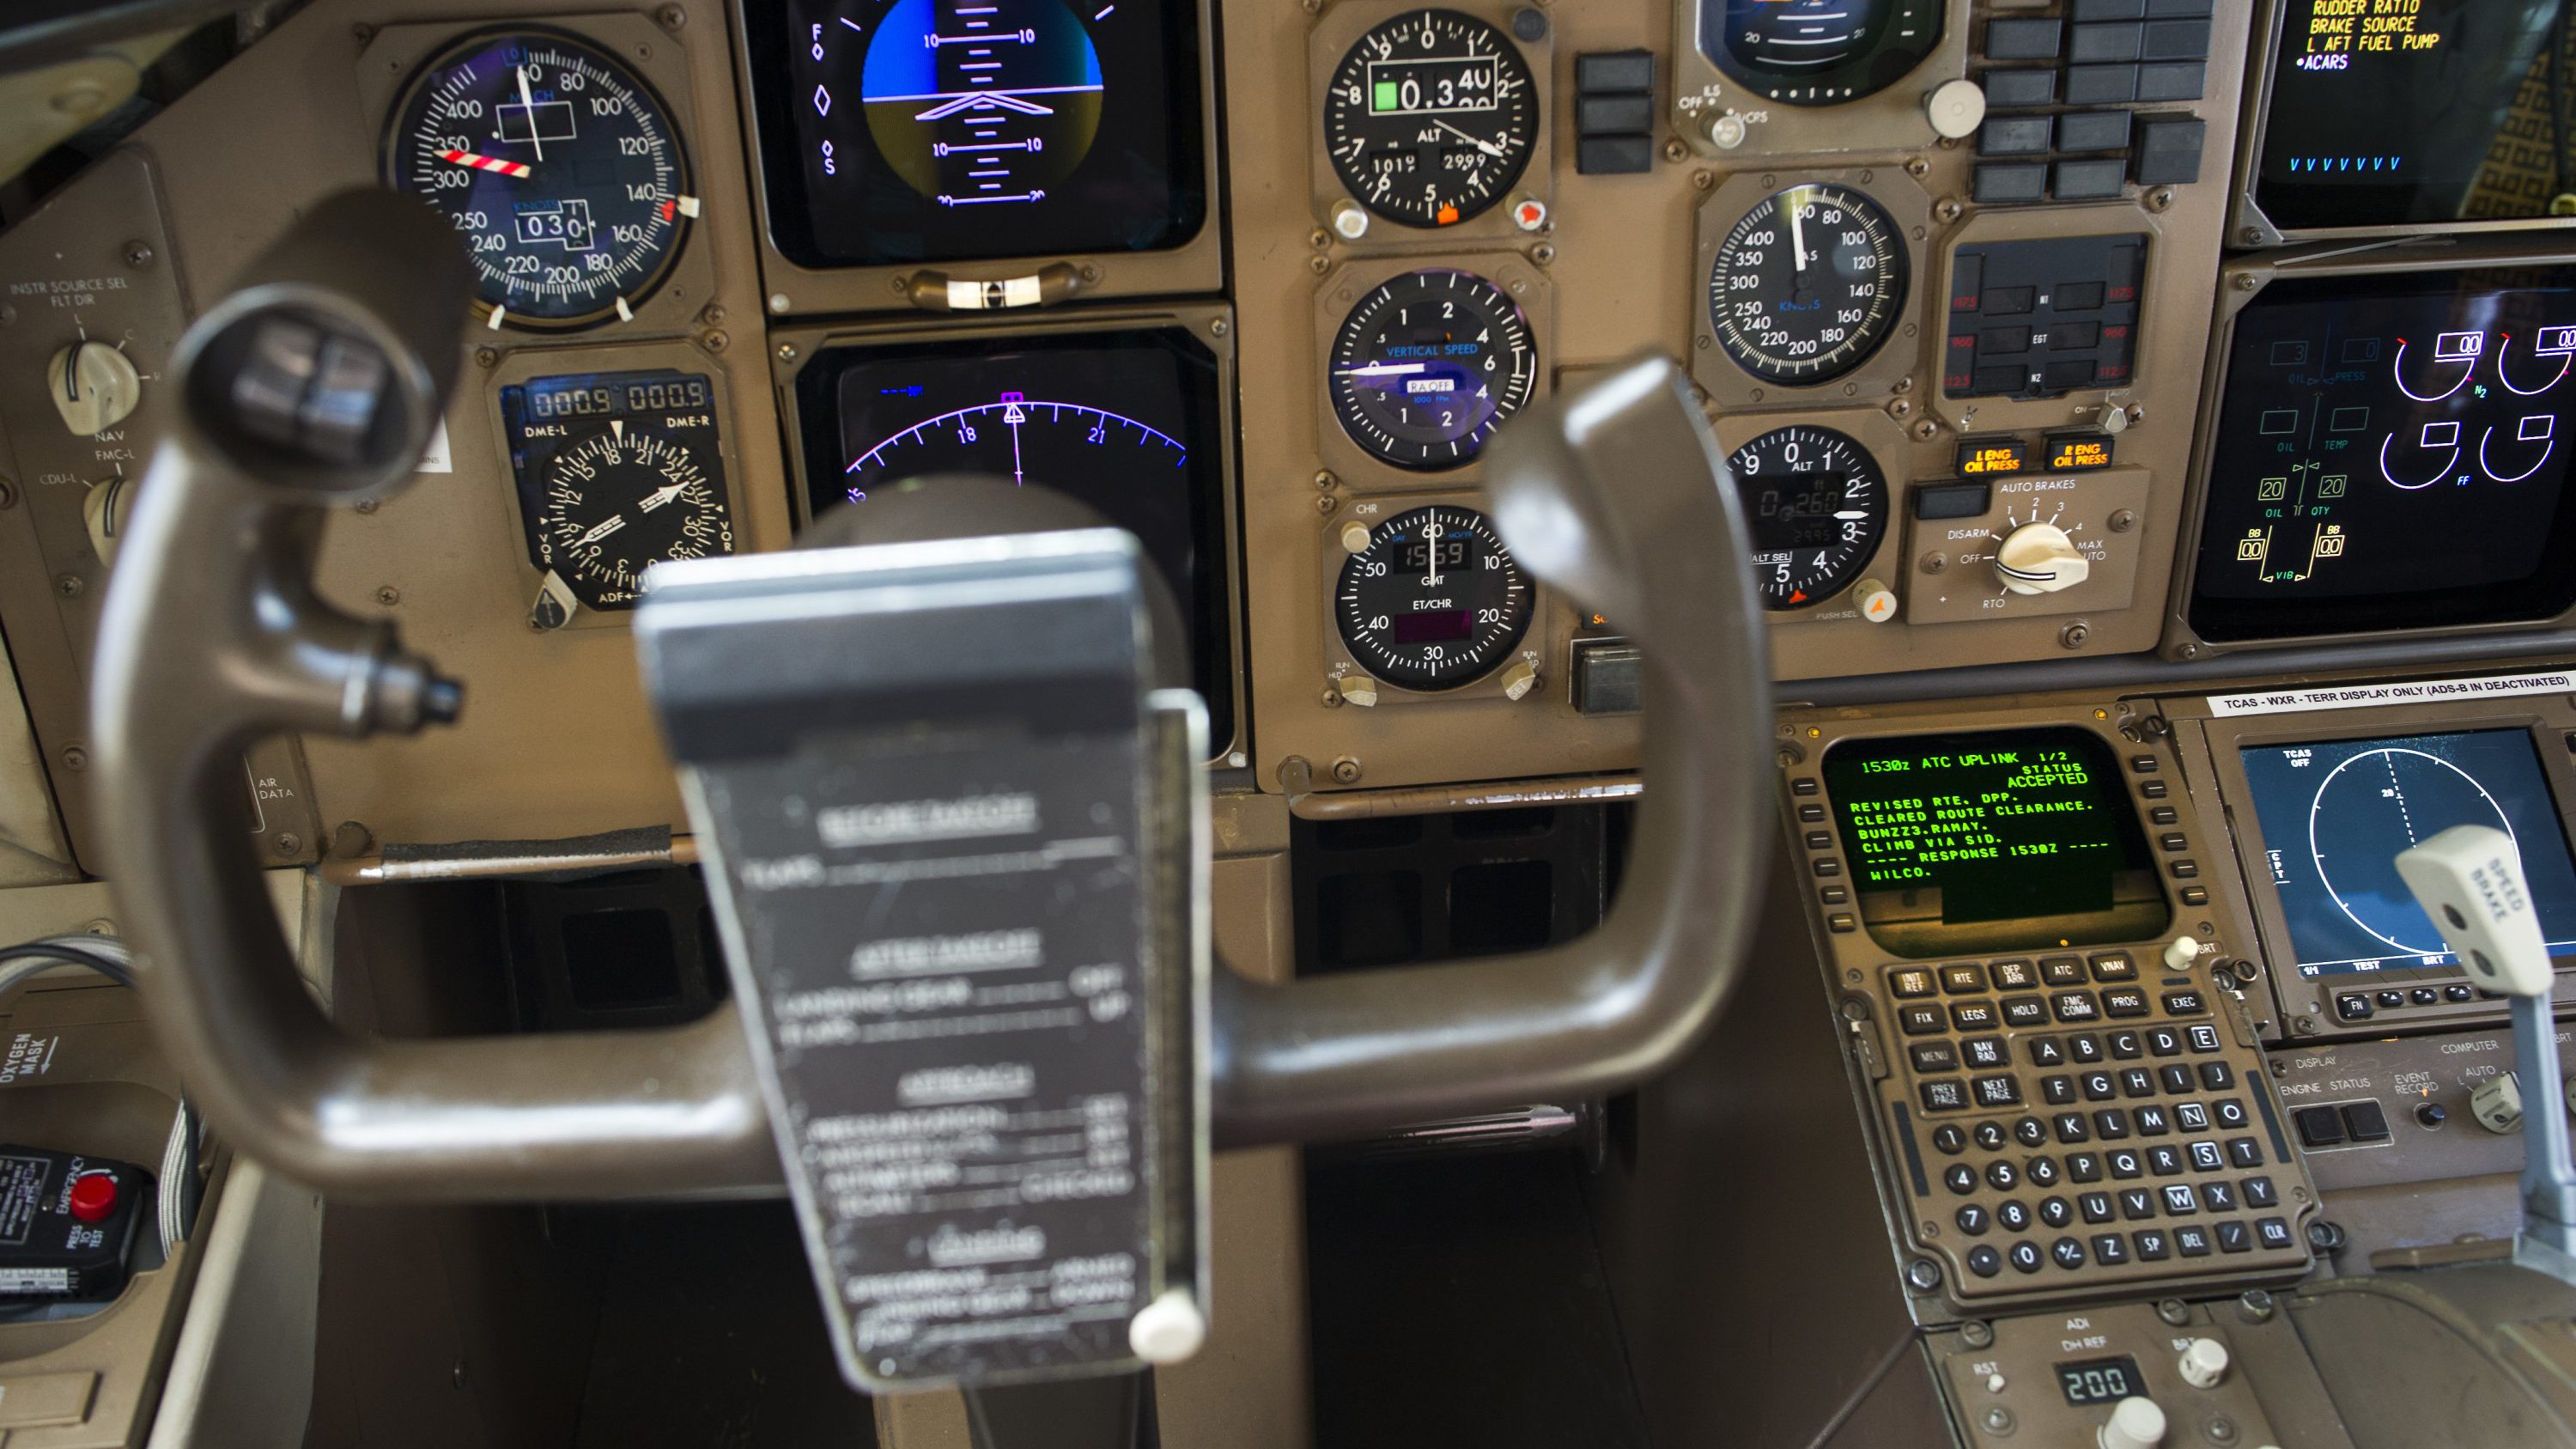 Data Communications Data Comm technology, lower right, is seen in the cockpit of an UPS Boeing 767-300F aircraft at Dulles International Airport Air Traffic Control Tower in Sterling, Va., Tuesday, Sept. 27, 2016. Data Comm gives air traffic controllers and pilots the ability to transmit flight plans, clearances, instructions, advisories, flight crew requests, and reports via a digital message service.